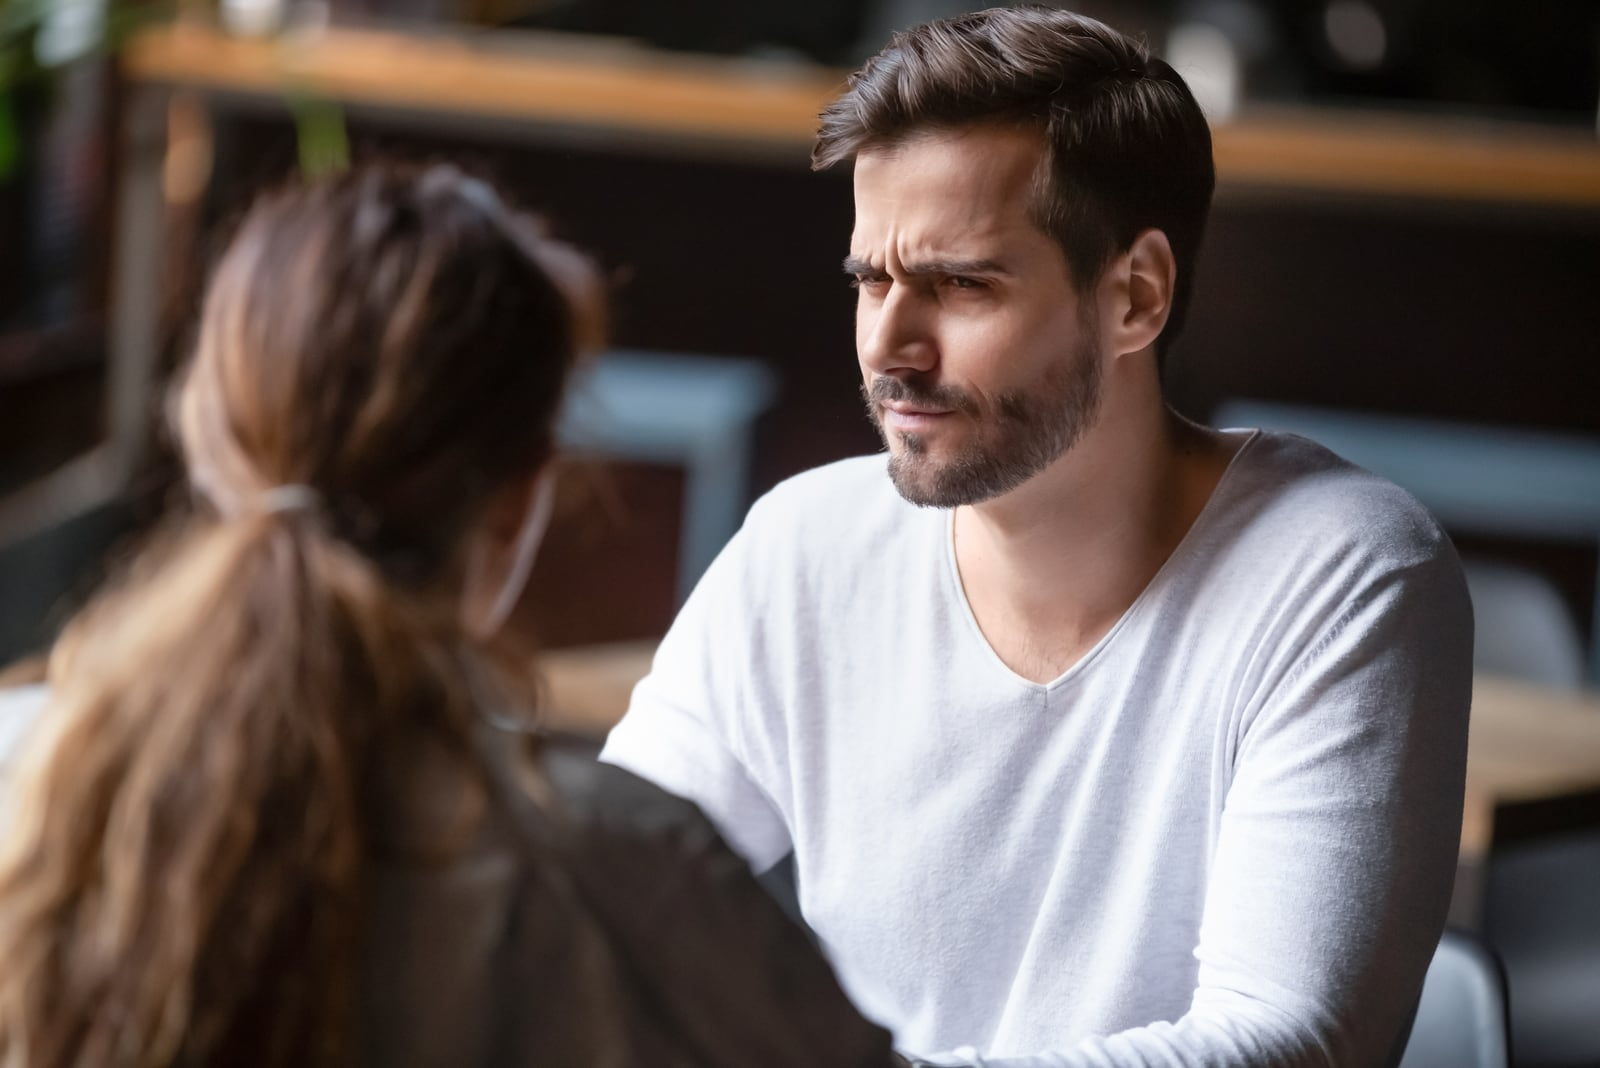 dissatisfied man looking at woman